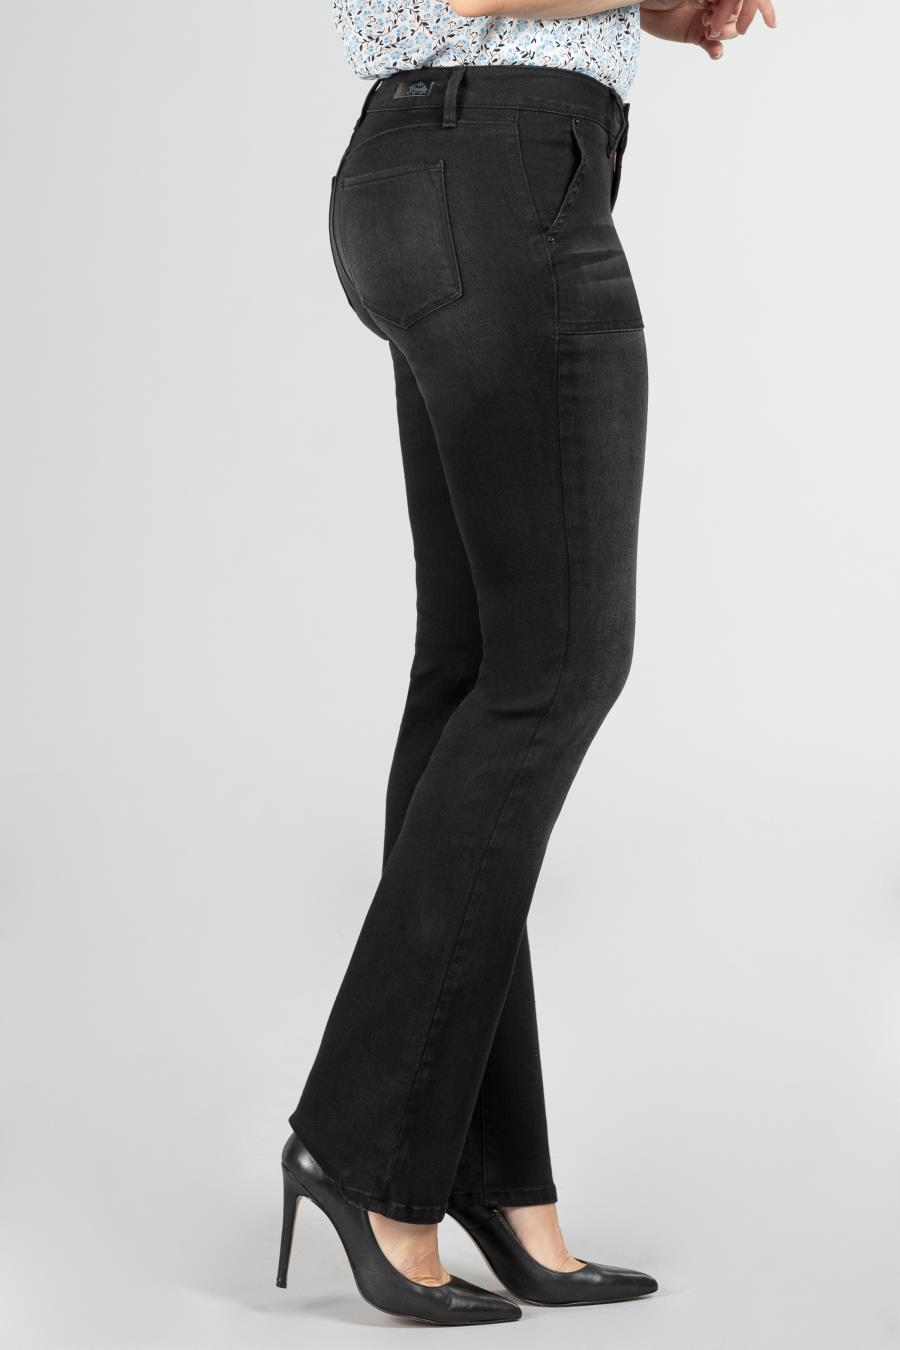 Women Modern Denim Bootcut Jean with Pork Chop Pockets